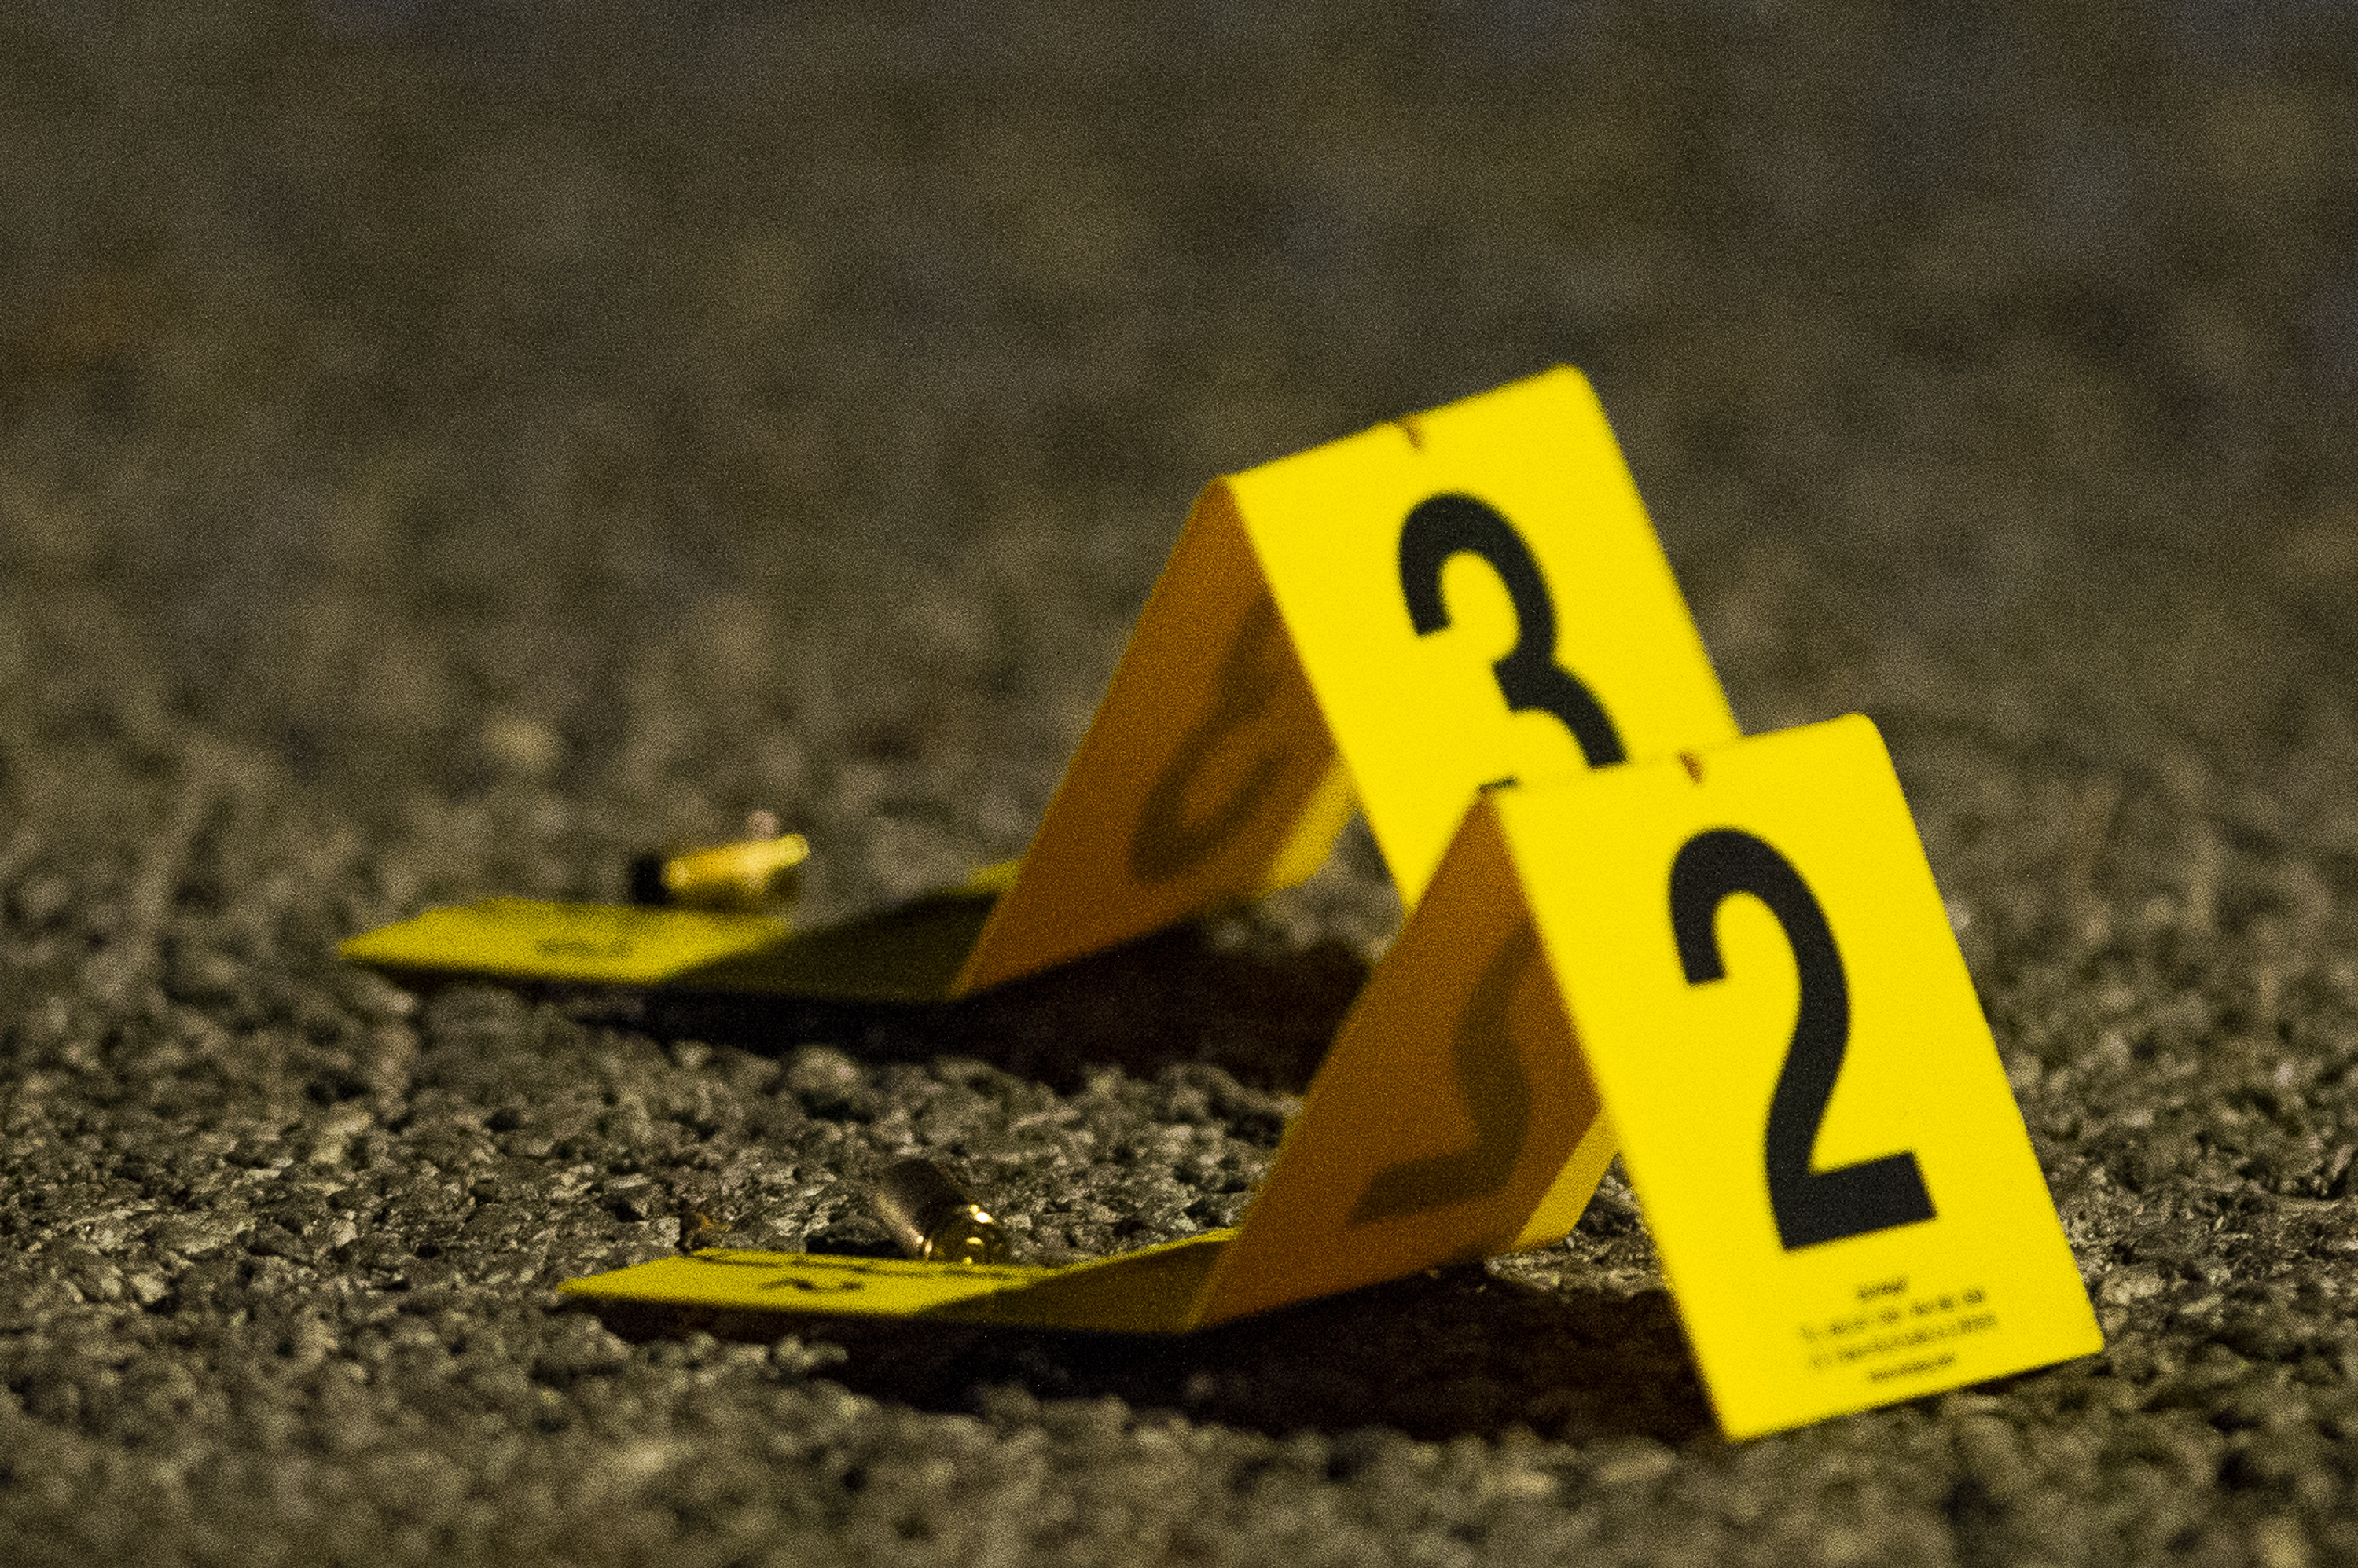 A man was killed and another was injured in a shooting May 3, 2020, in the 5200 block of South Troy Street.